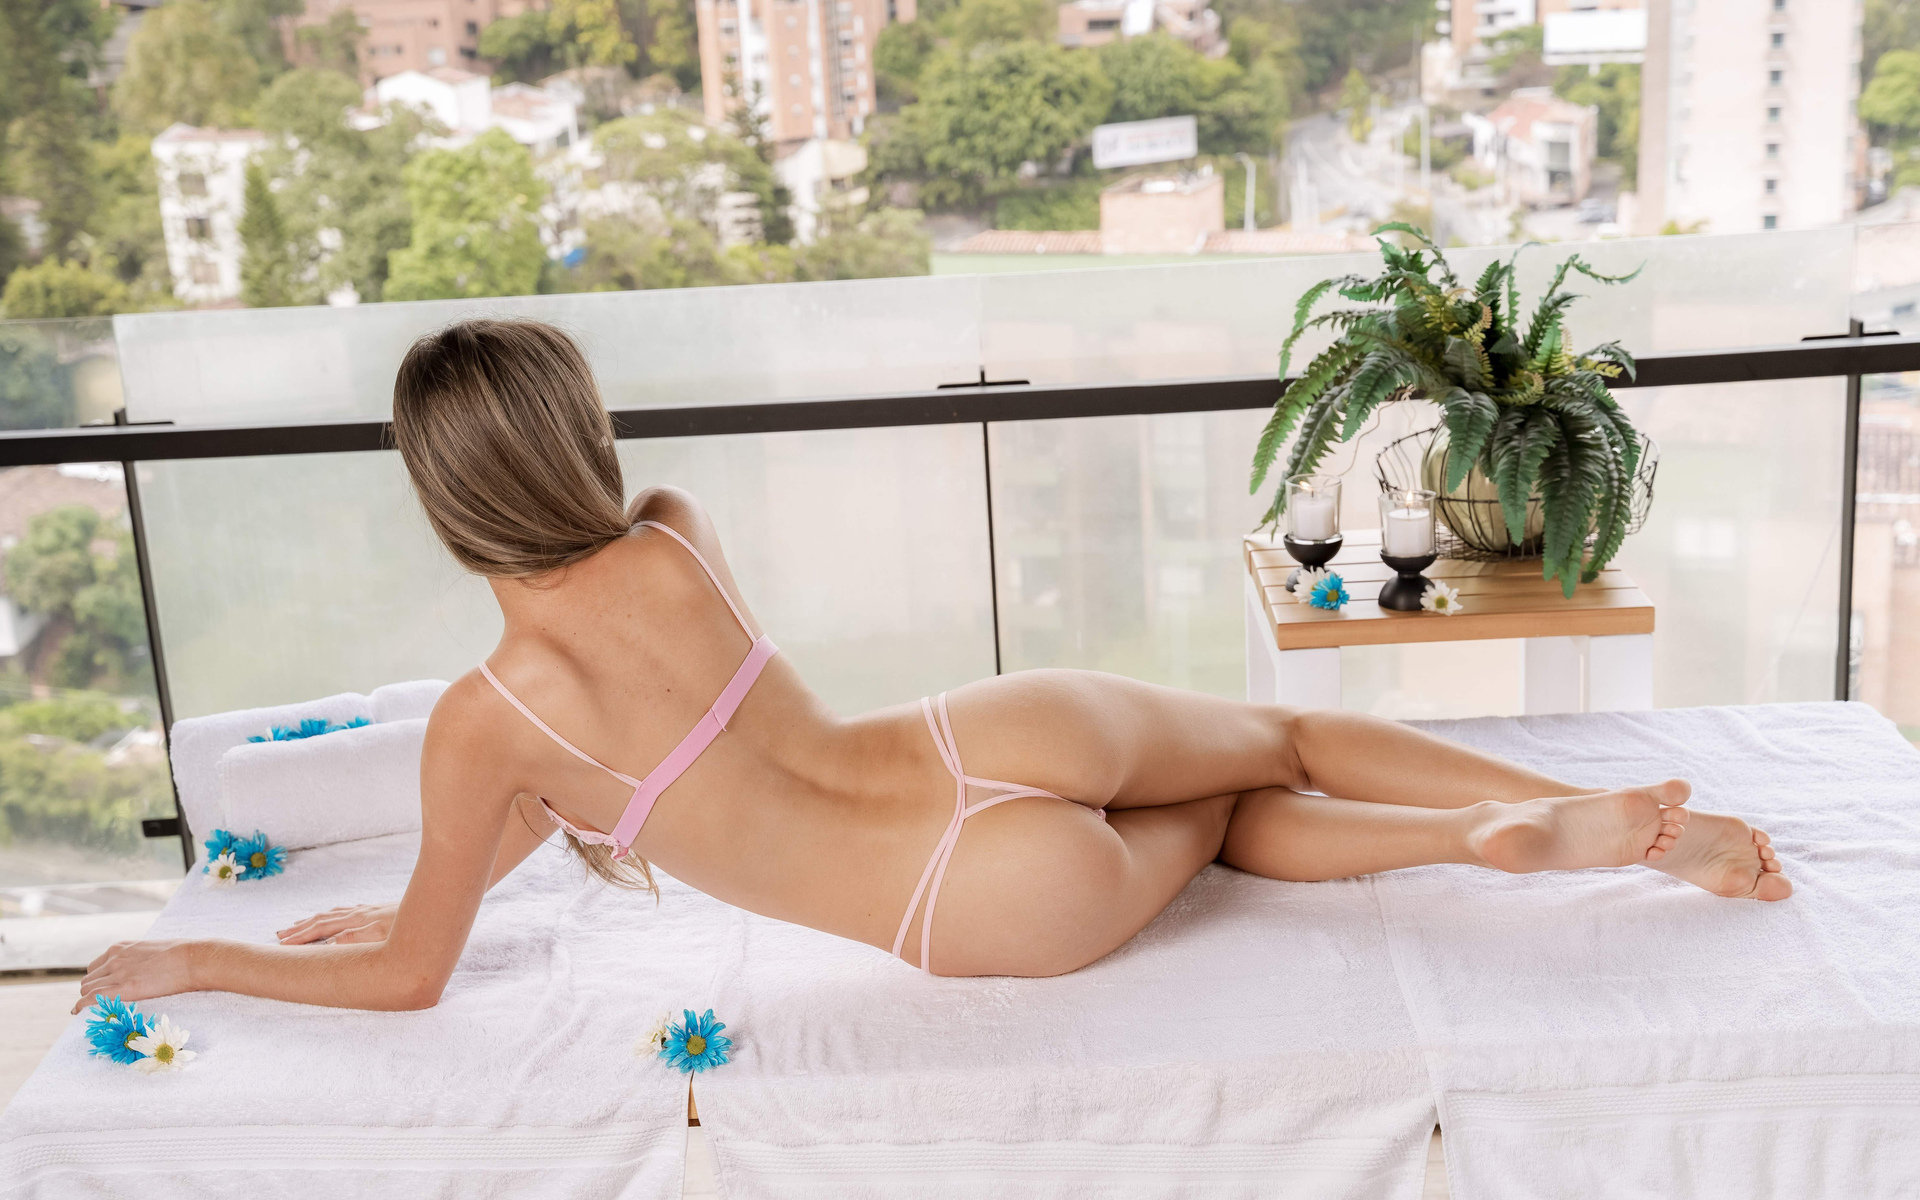 girl, back, ass, pink lingerie